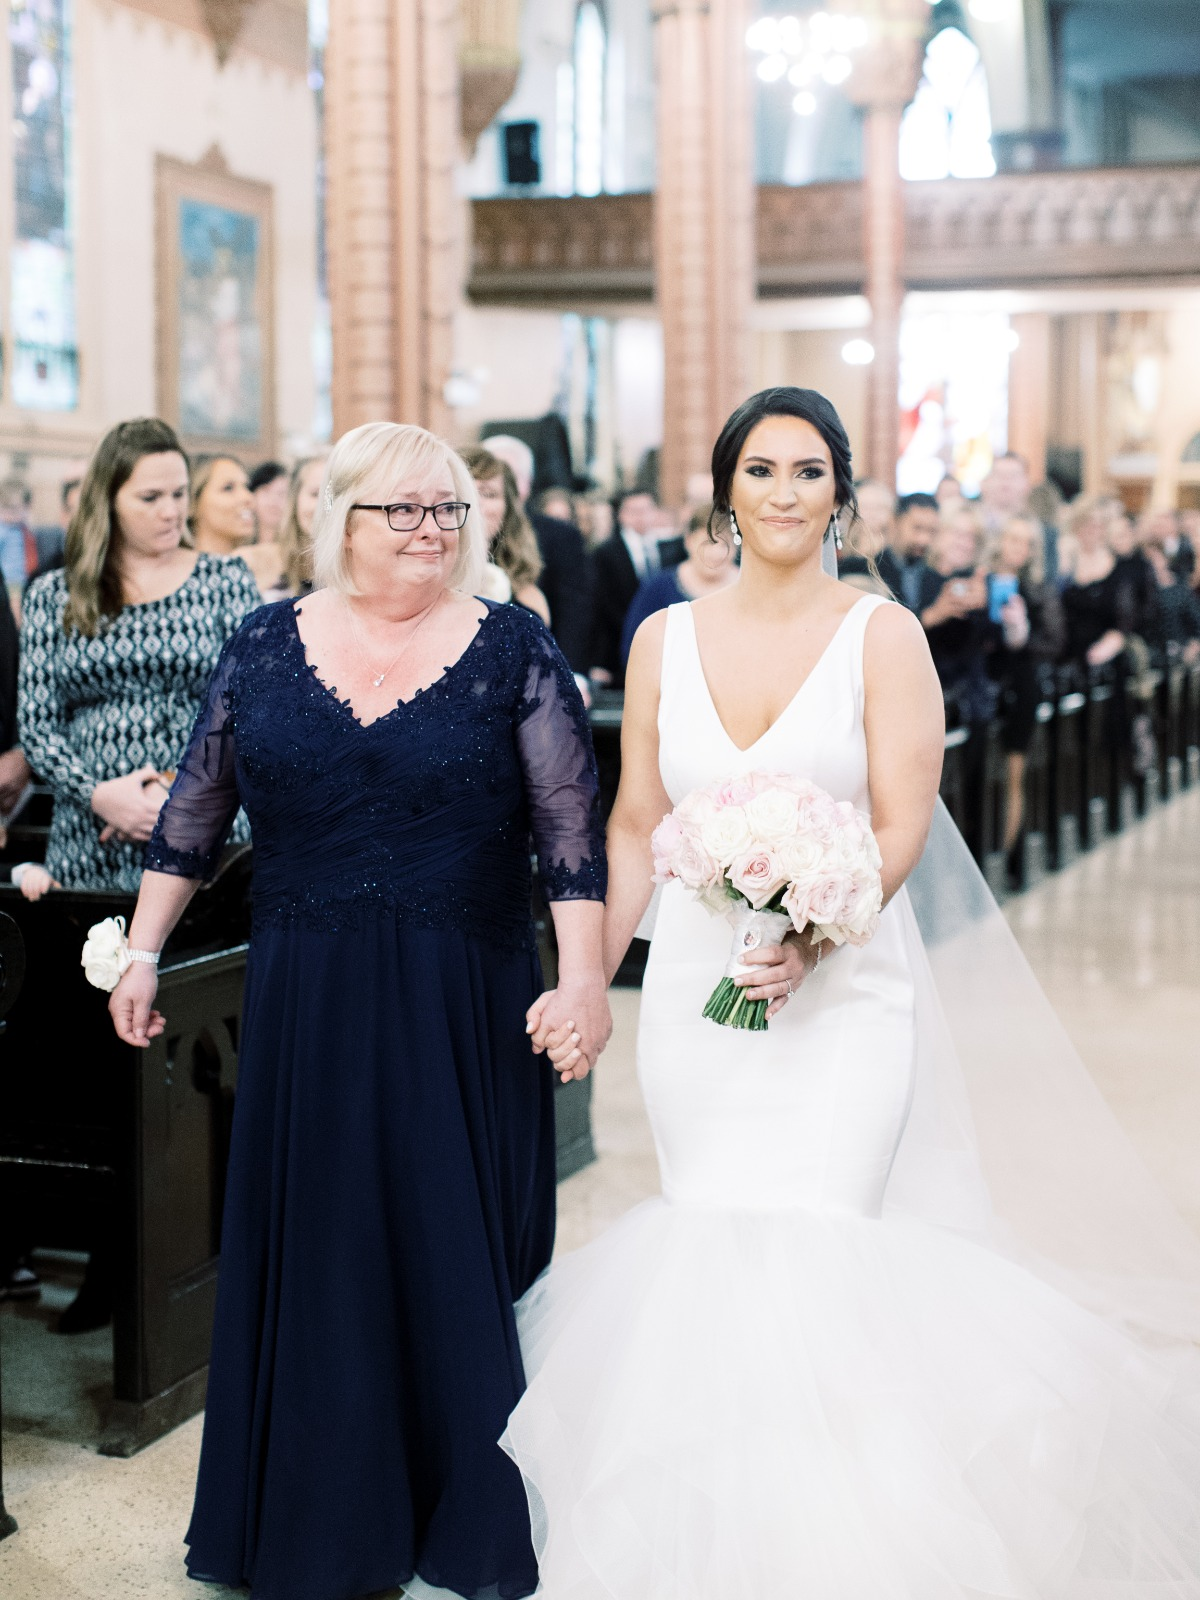 Mom walking daughter down the aisle at wedding